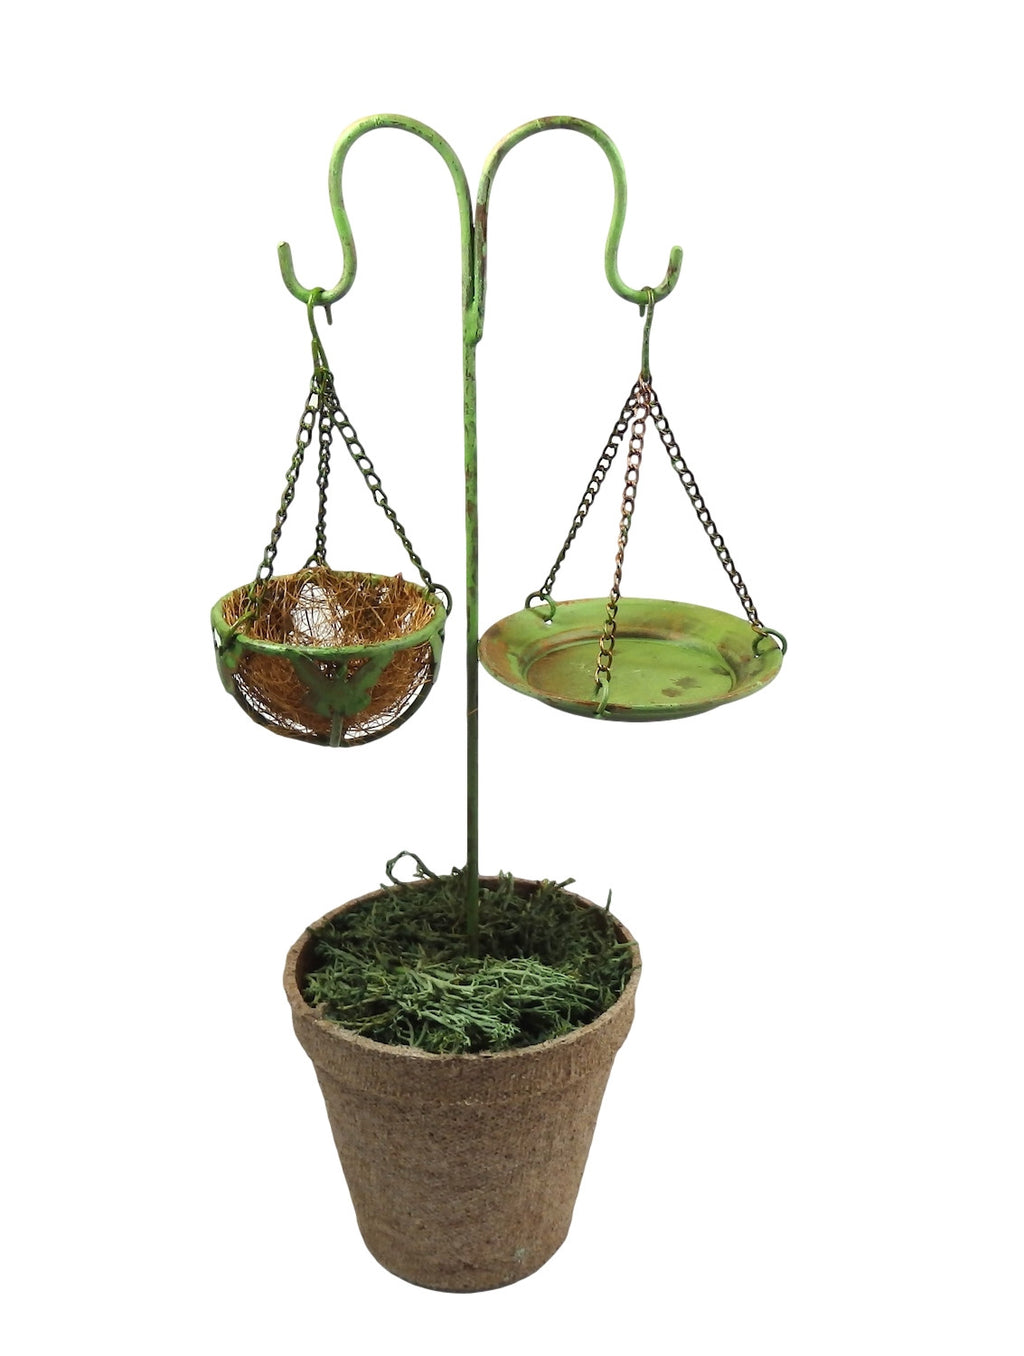 Fairy Garden Double Shepherds Hook, Bird Bath and Butterfly Basket Planter - ...-Fairy Garden-Oakview Collectibles